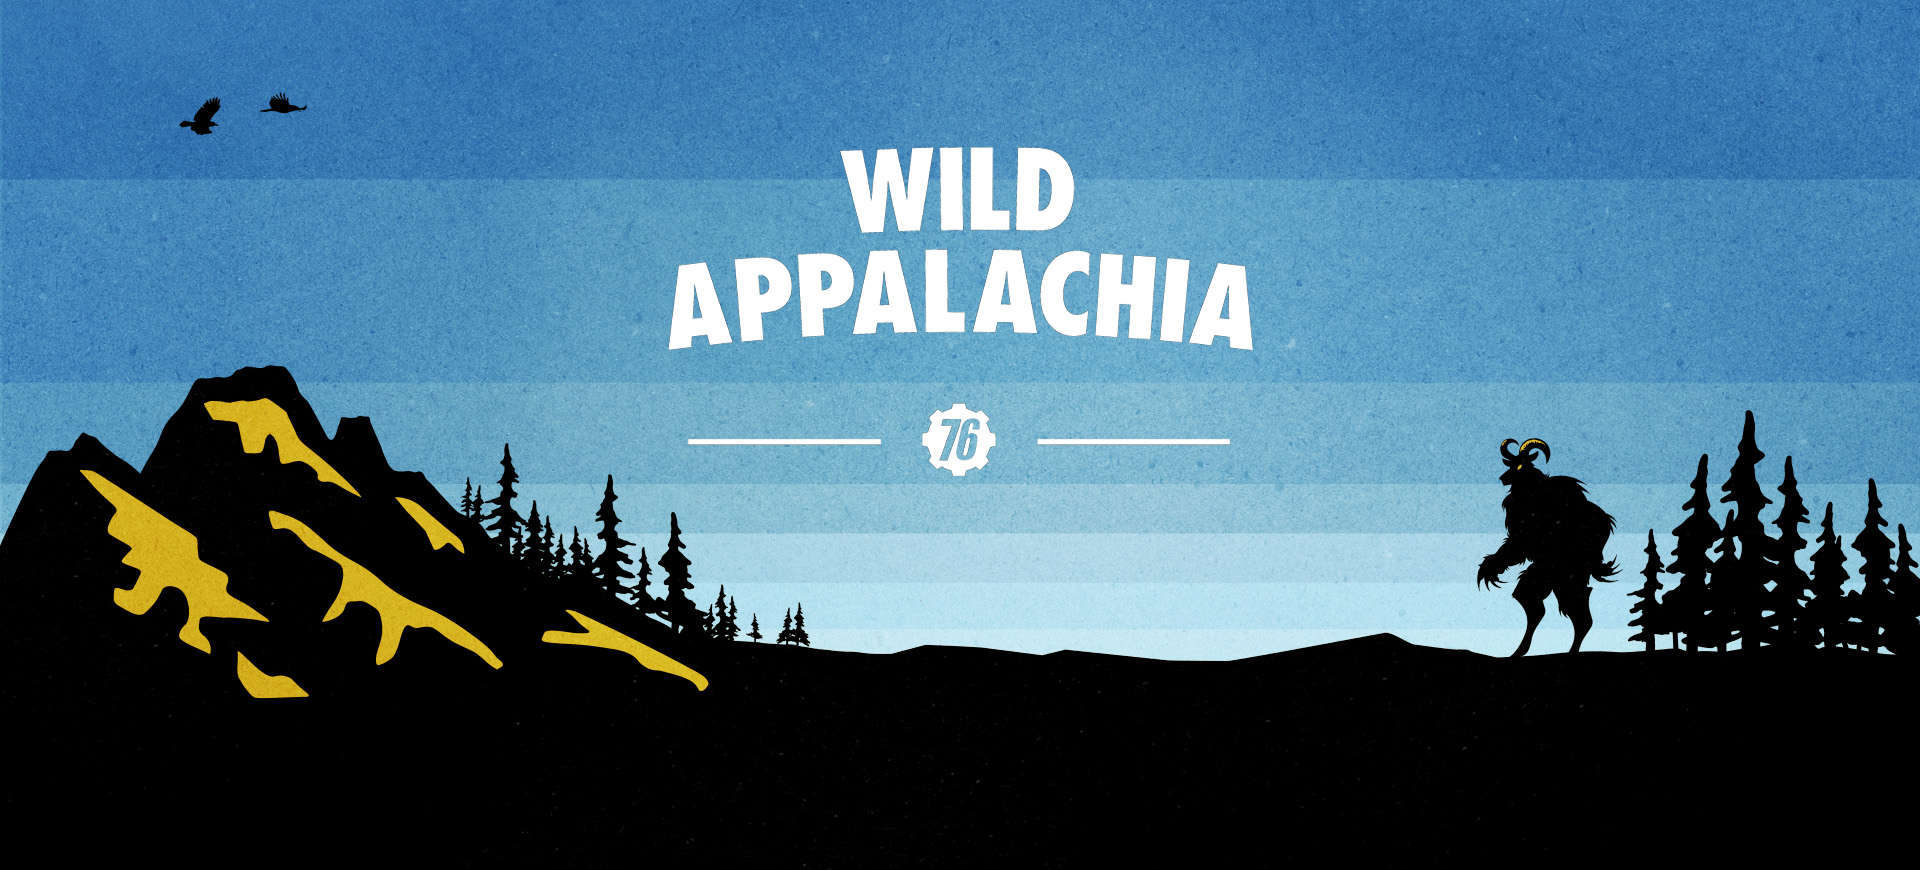 TRAILER: Fallout 76 – Wild Appalachia Update Available Now for Free